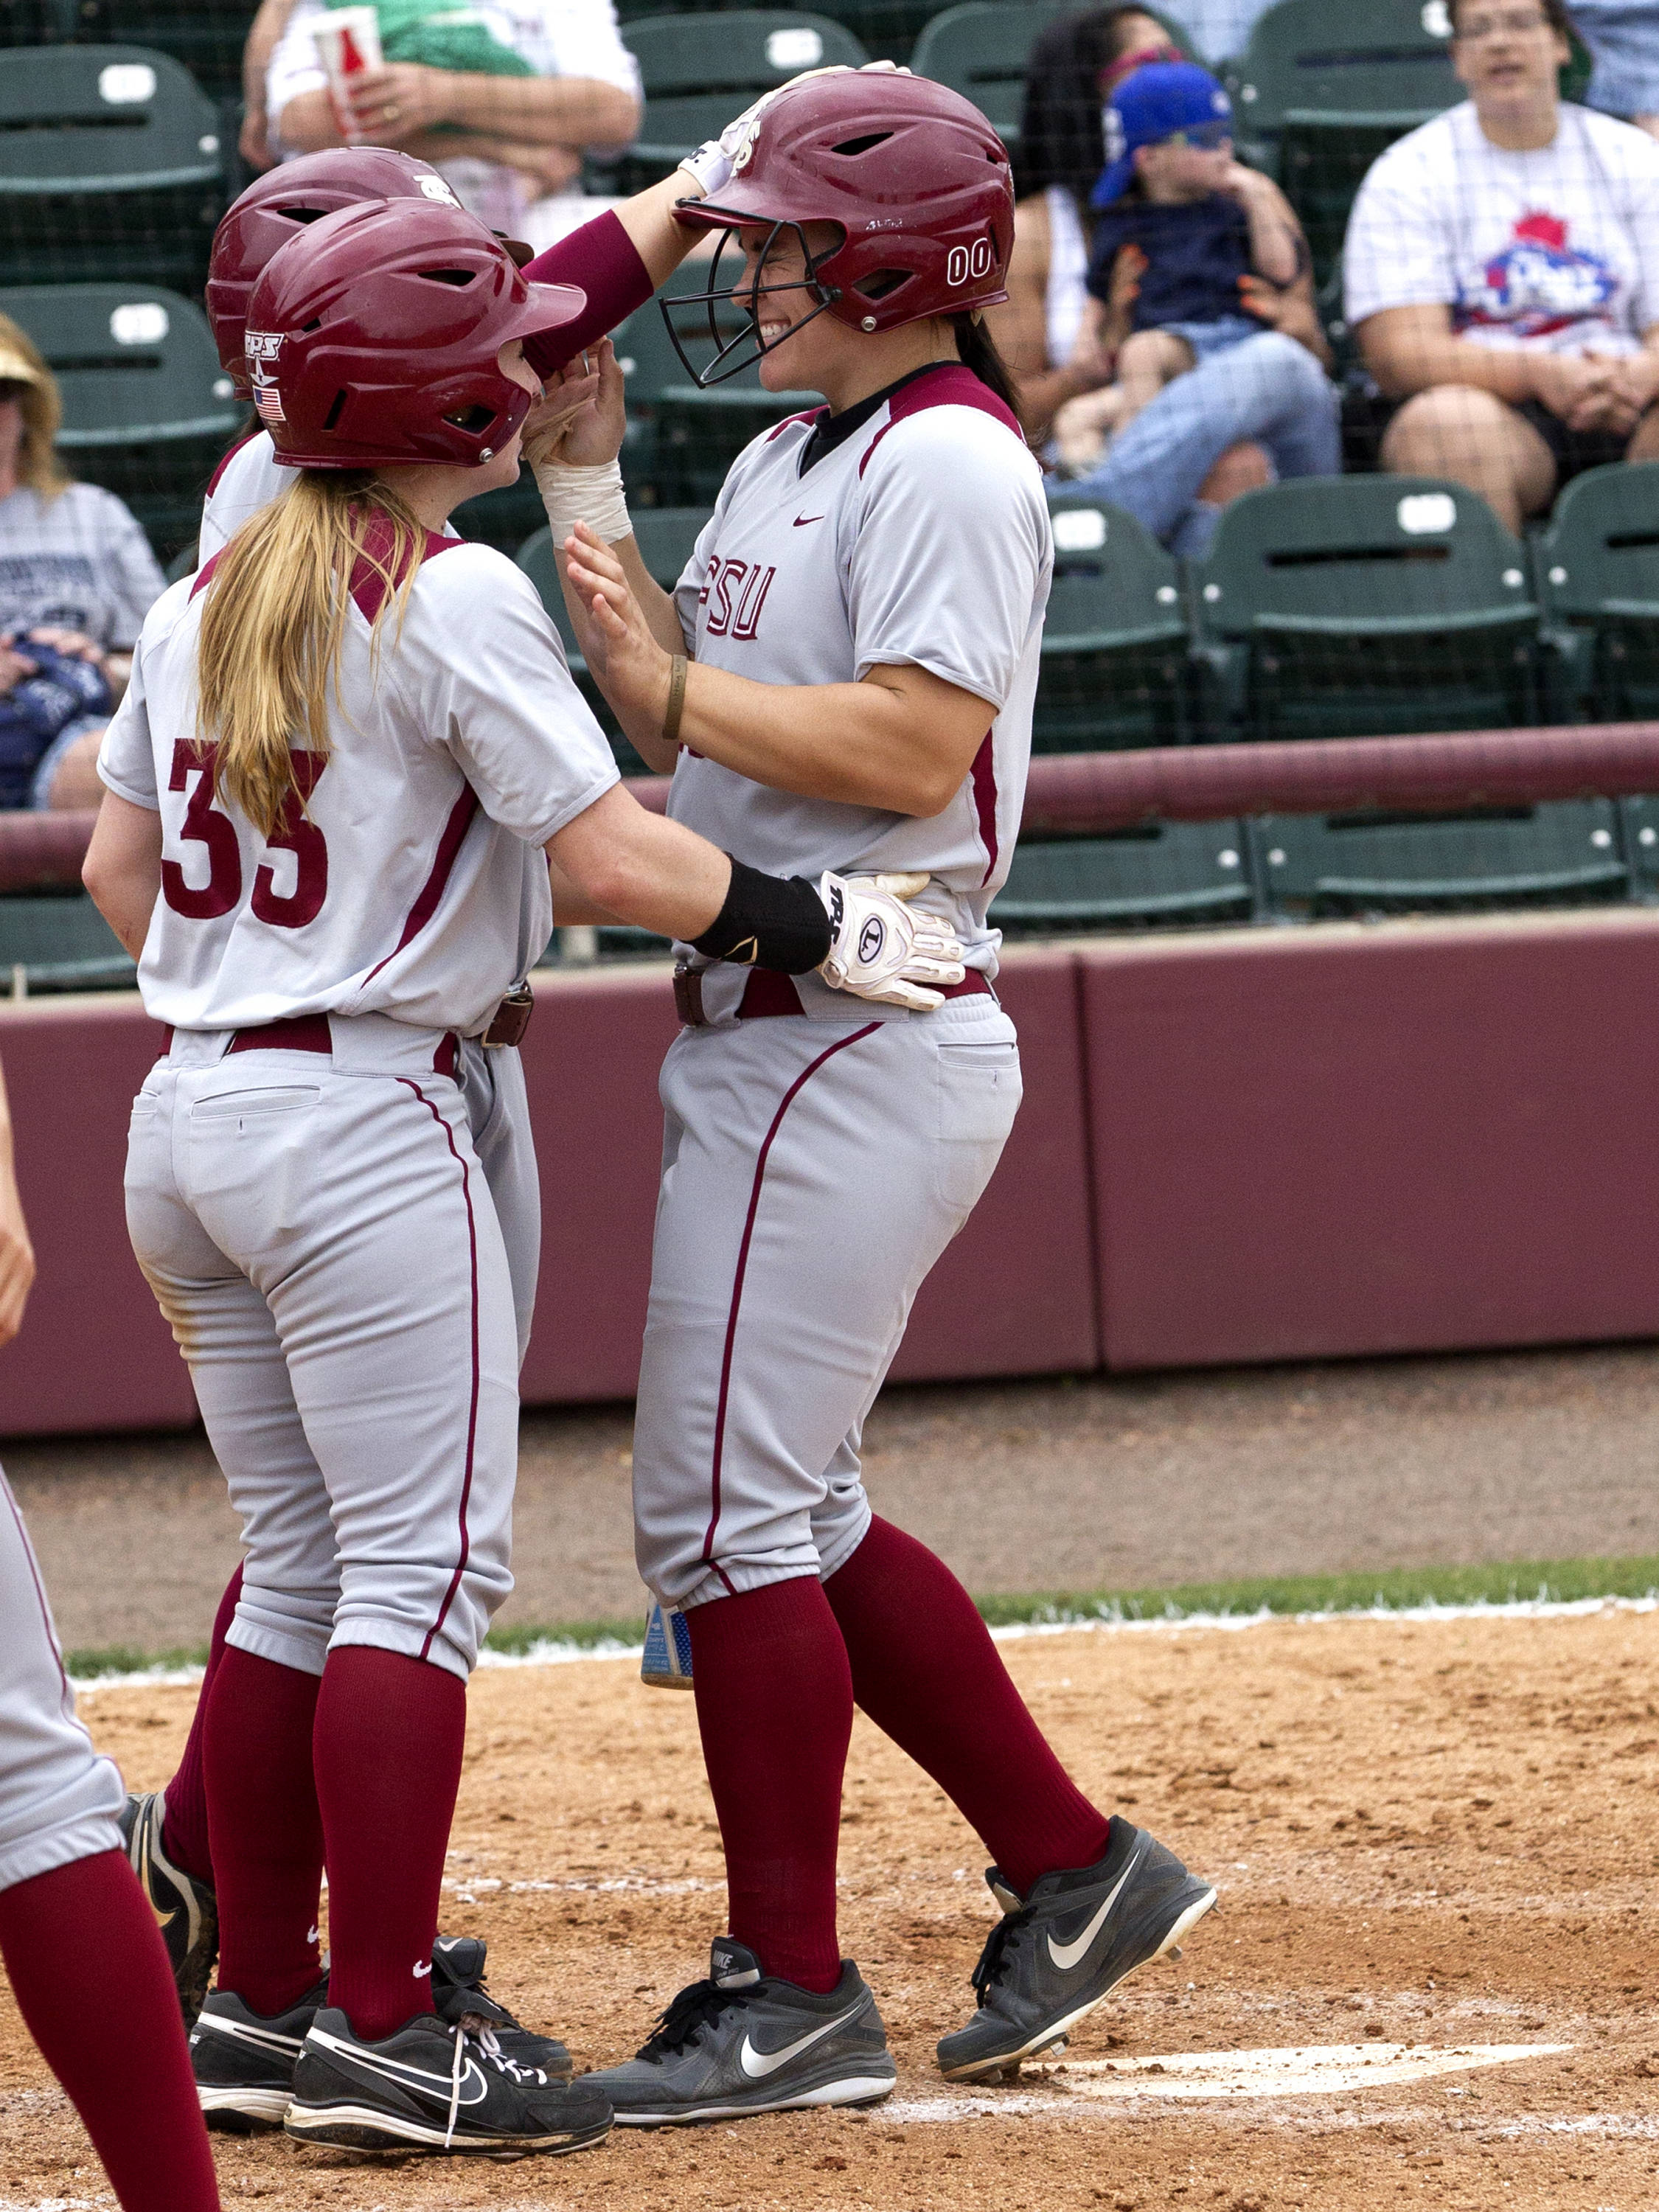 Celeste Gomez (00) being welcomed crossing home plate, FSU vs Minnesota, 03/17/13. (Photo by Steve Musco)